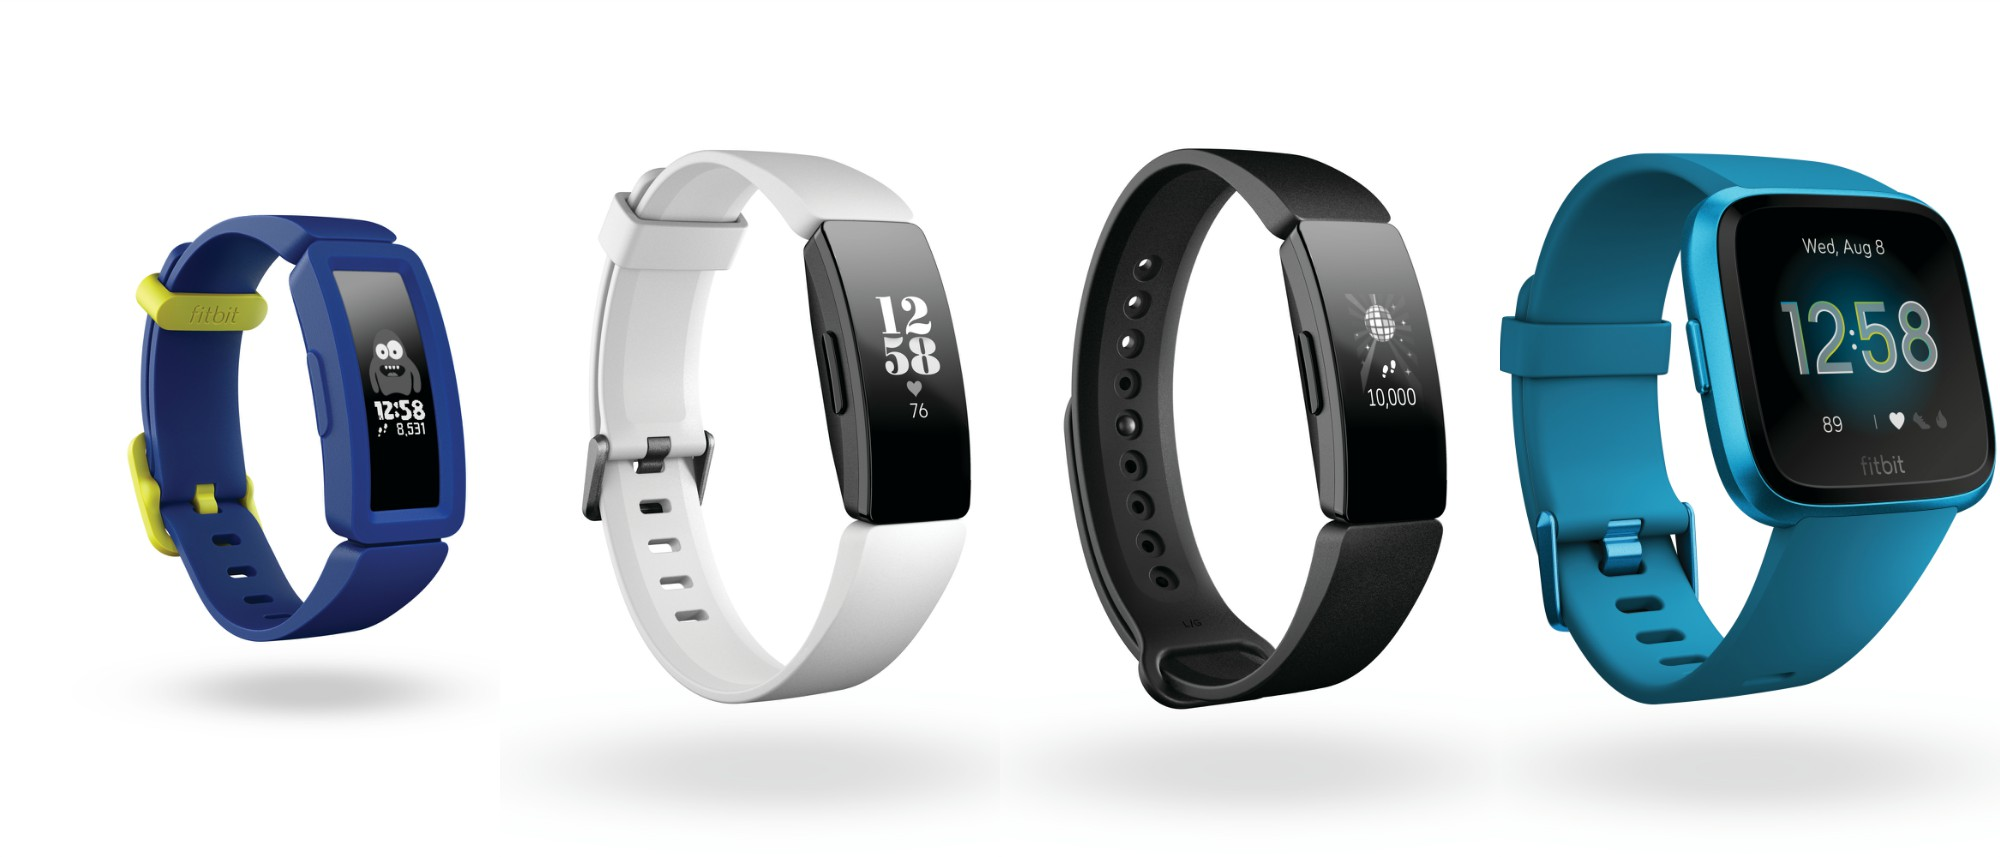 Fitbit Launches Four New Wearables, Making Health and Fitness